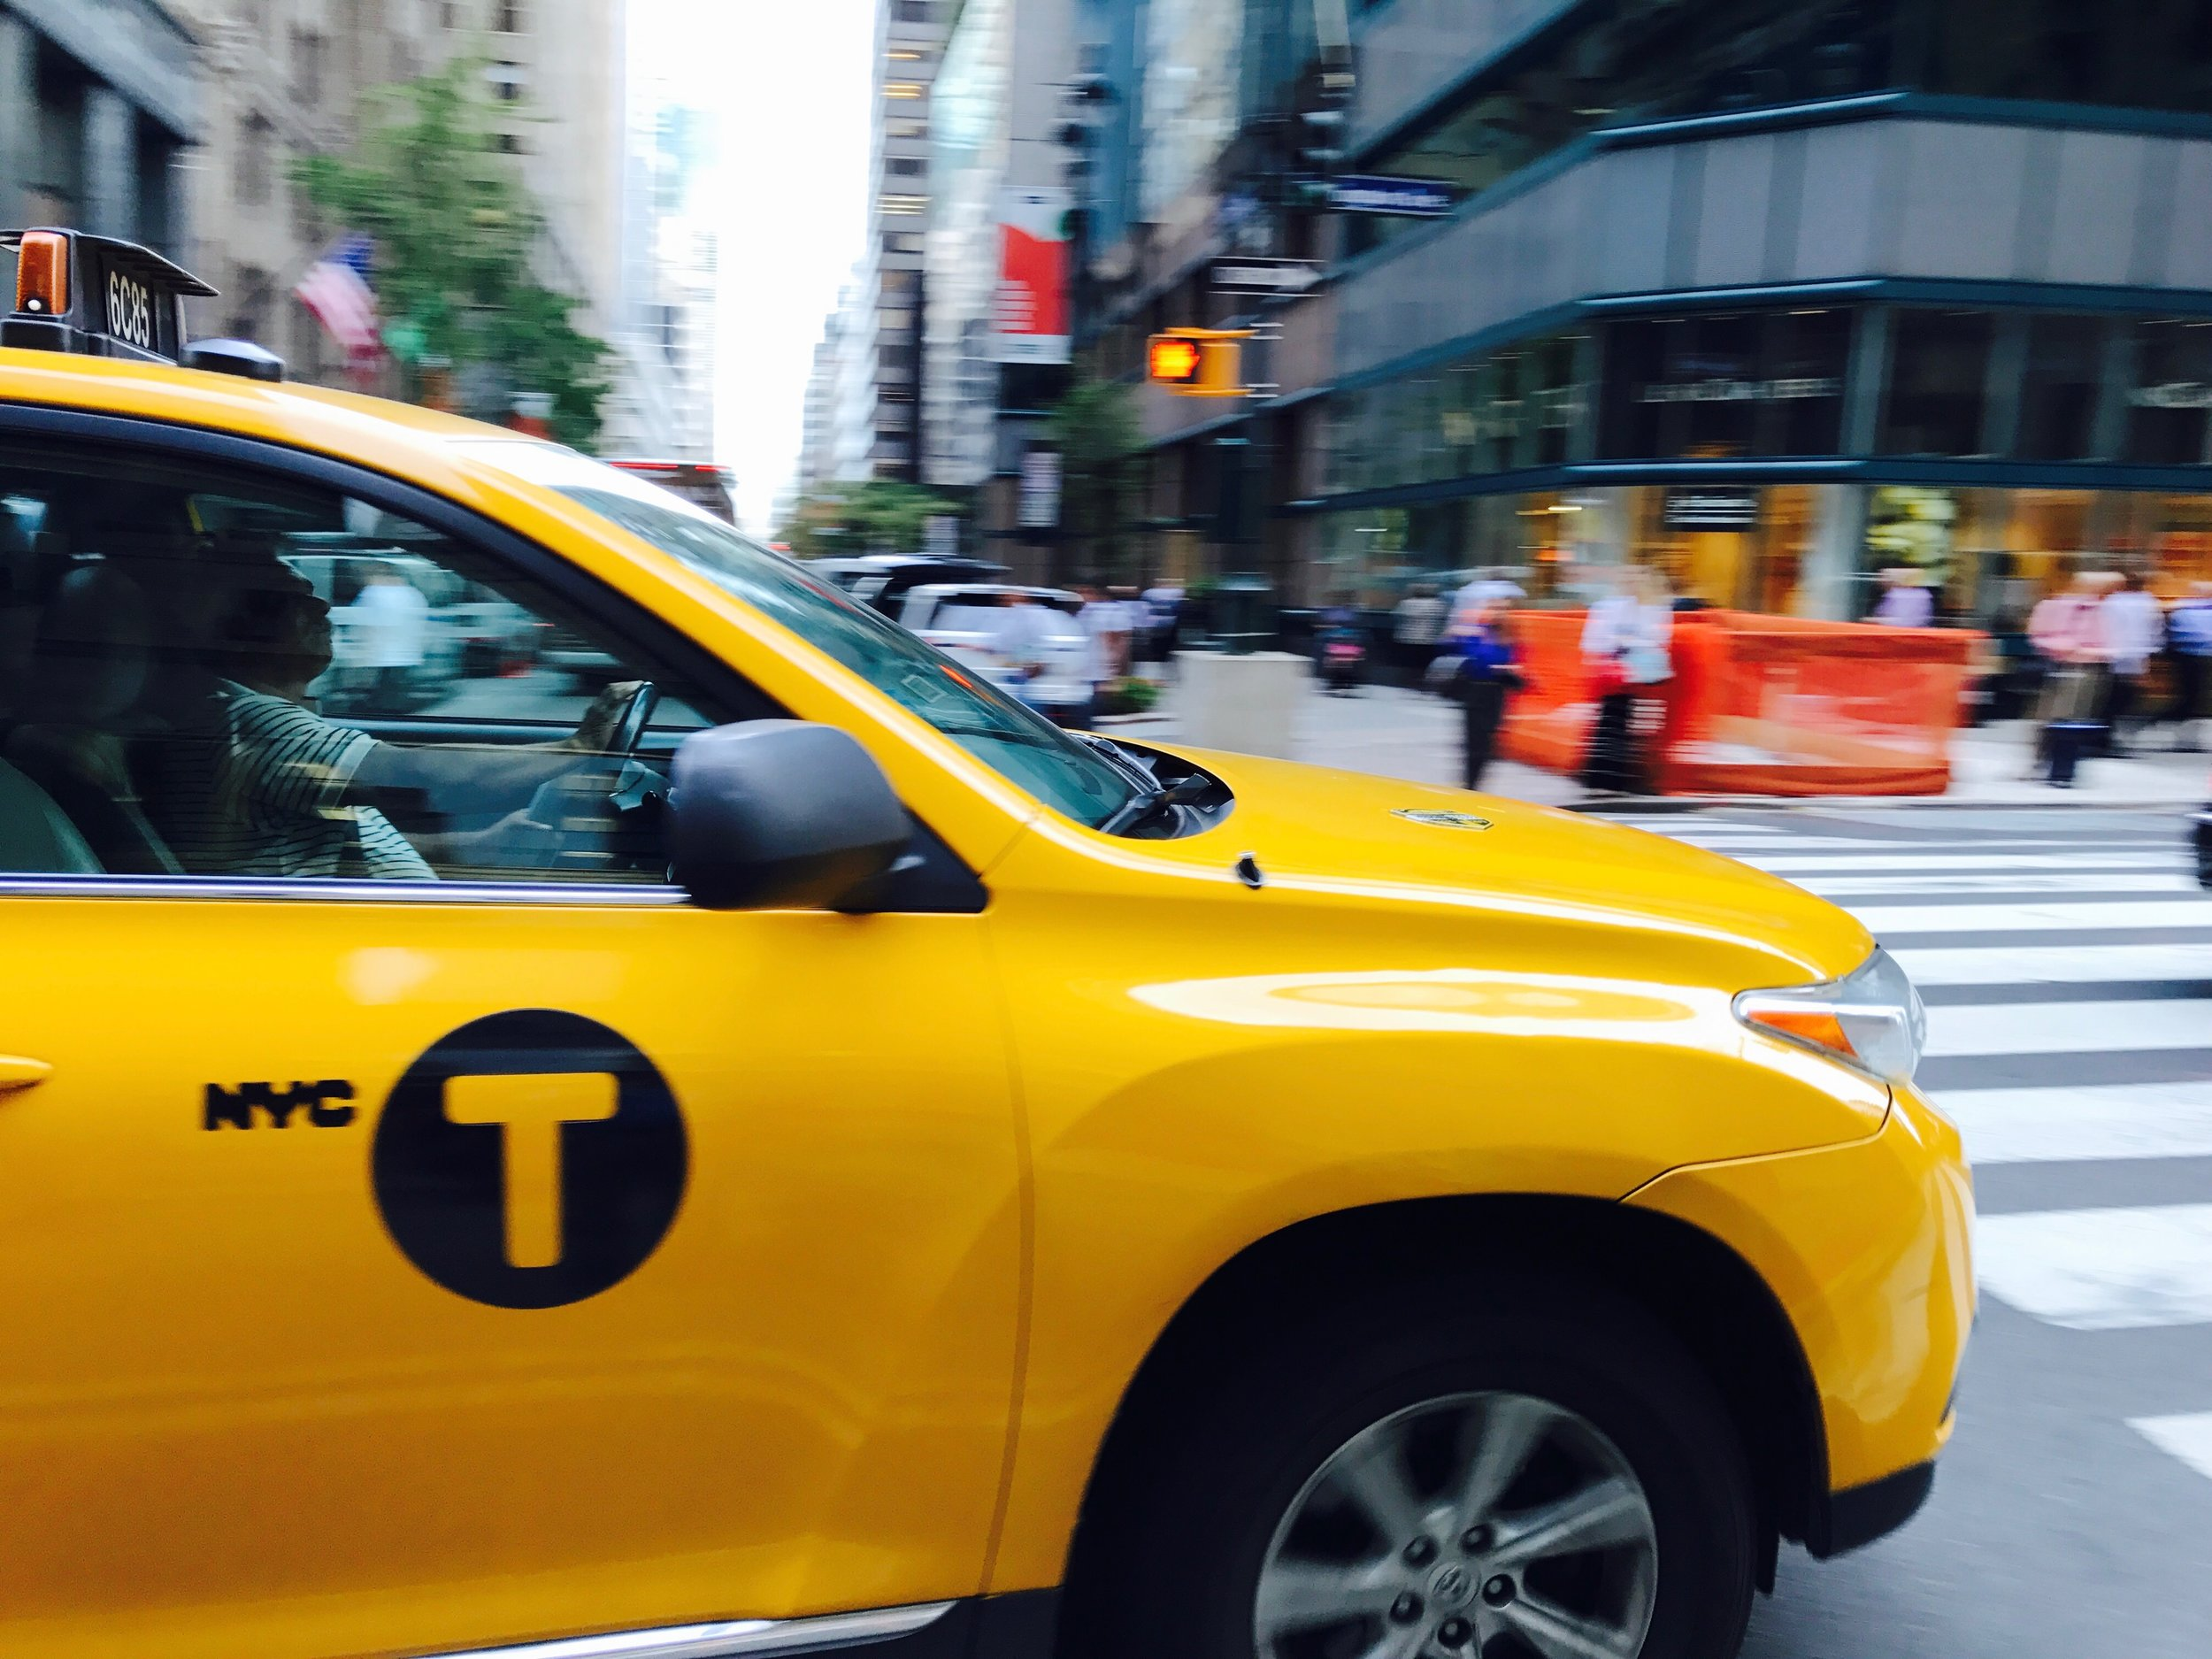 Taxi on Lexington Avenue  On Lexington Avenue, I'll often pull out my phone and try to grab panning shots of cars going by. So as the car comes up, I'll hit the shutter and attempt to move the phone in the same direction as the car while it passes. Hence the blurry background and less blurry car.